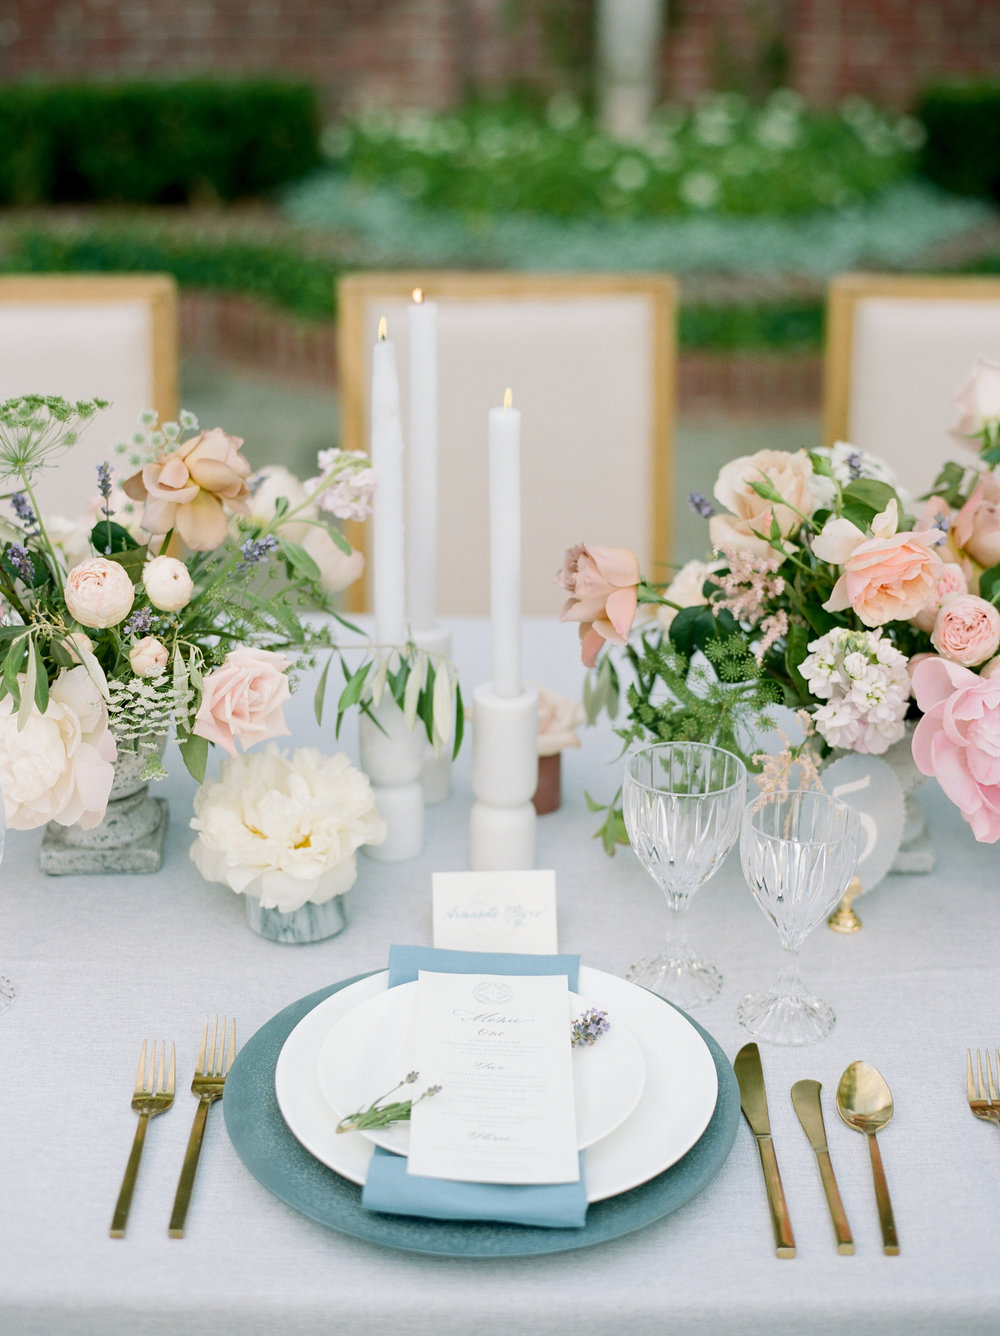 Half Moon Letting, Two Be Wed, Aztec Events & Tents, Swift Events, Flower Vibes